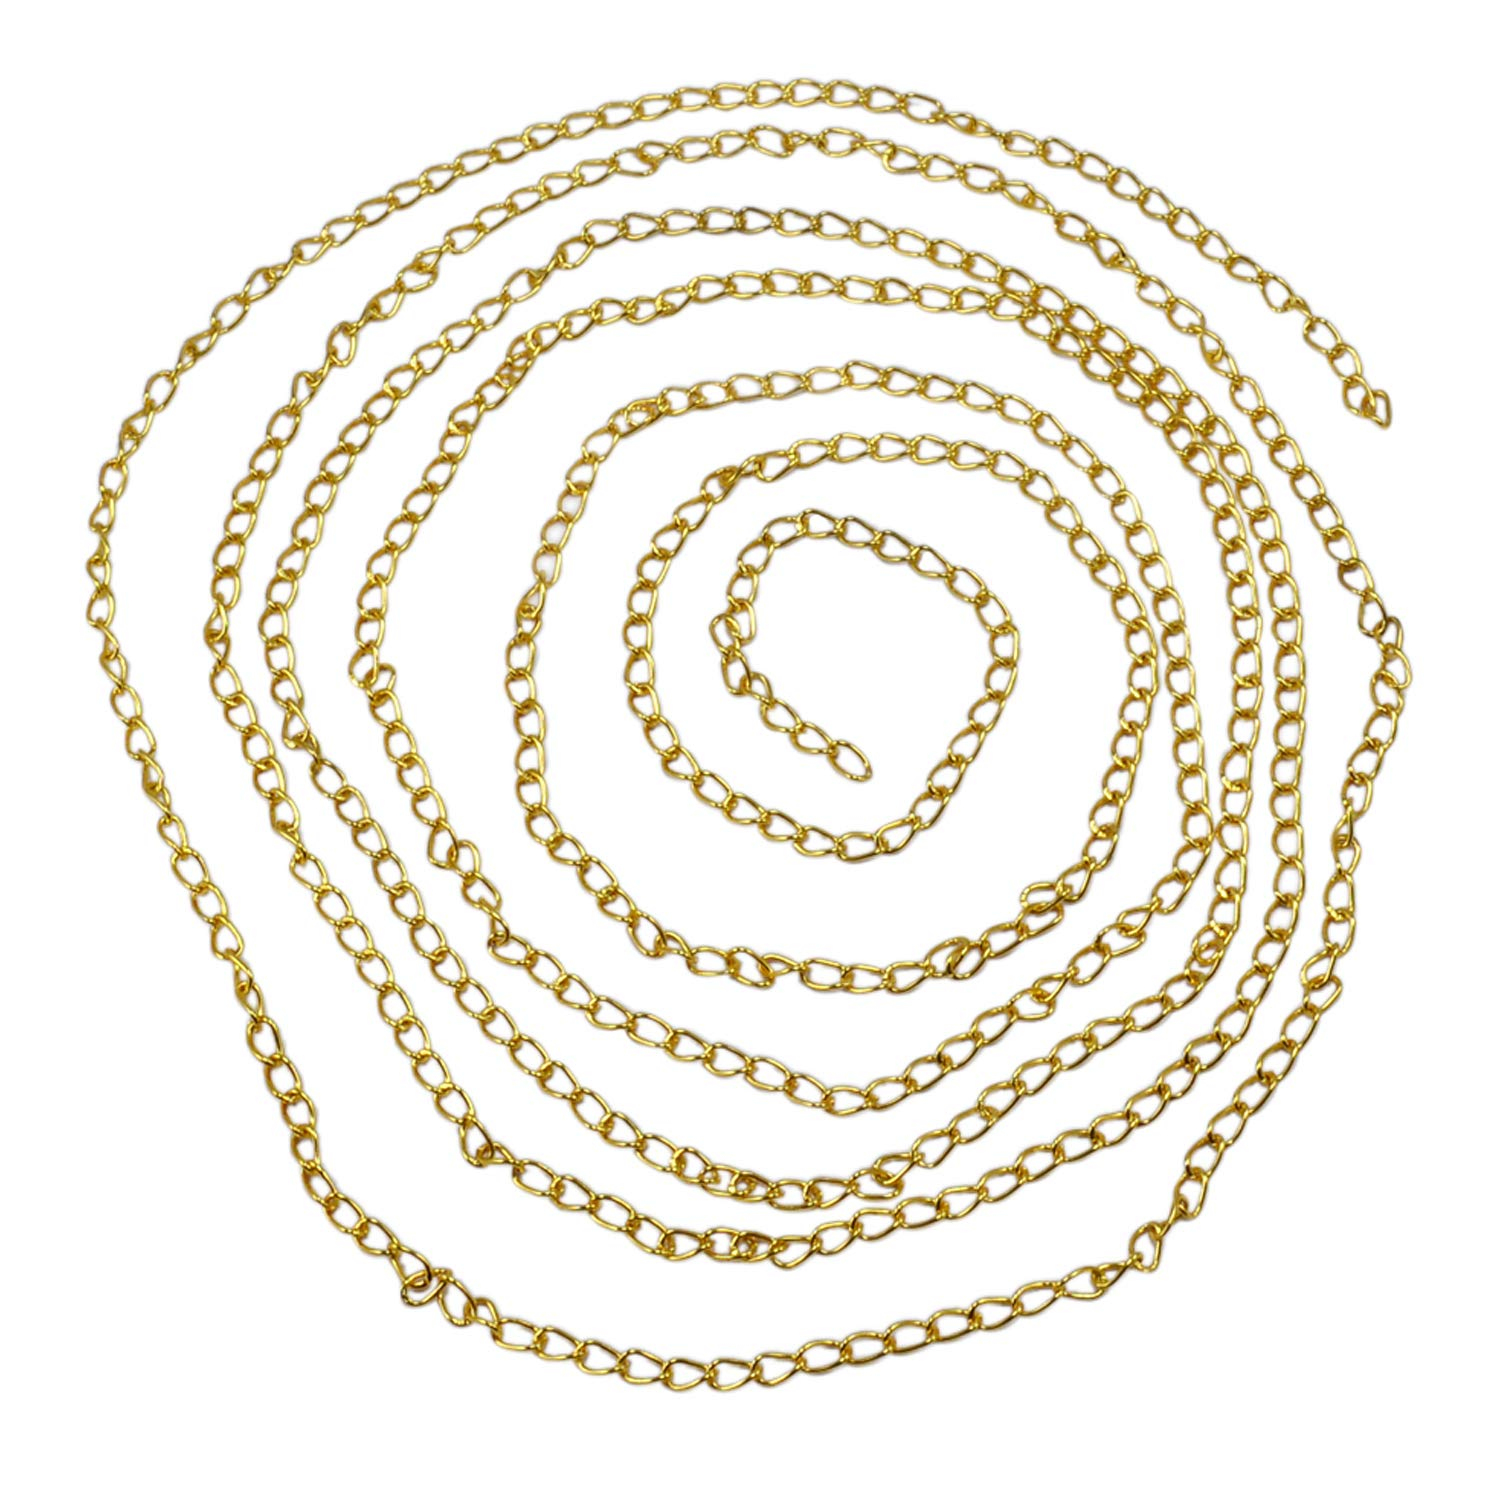 228.8 Centimeter Silvestoo Jaipur Yellow Color Gold Plated Chain Size Length